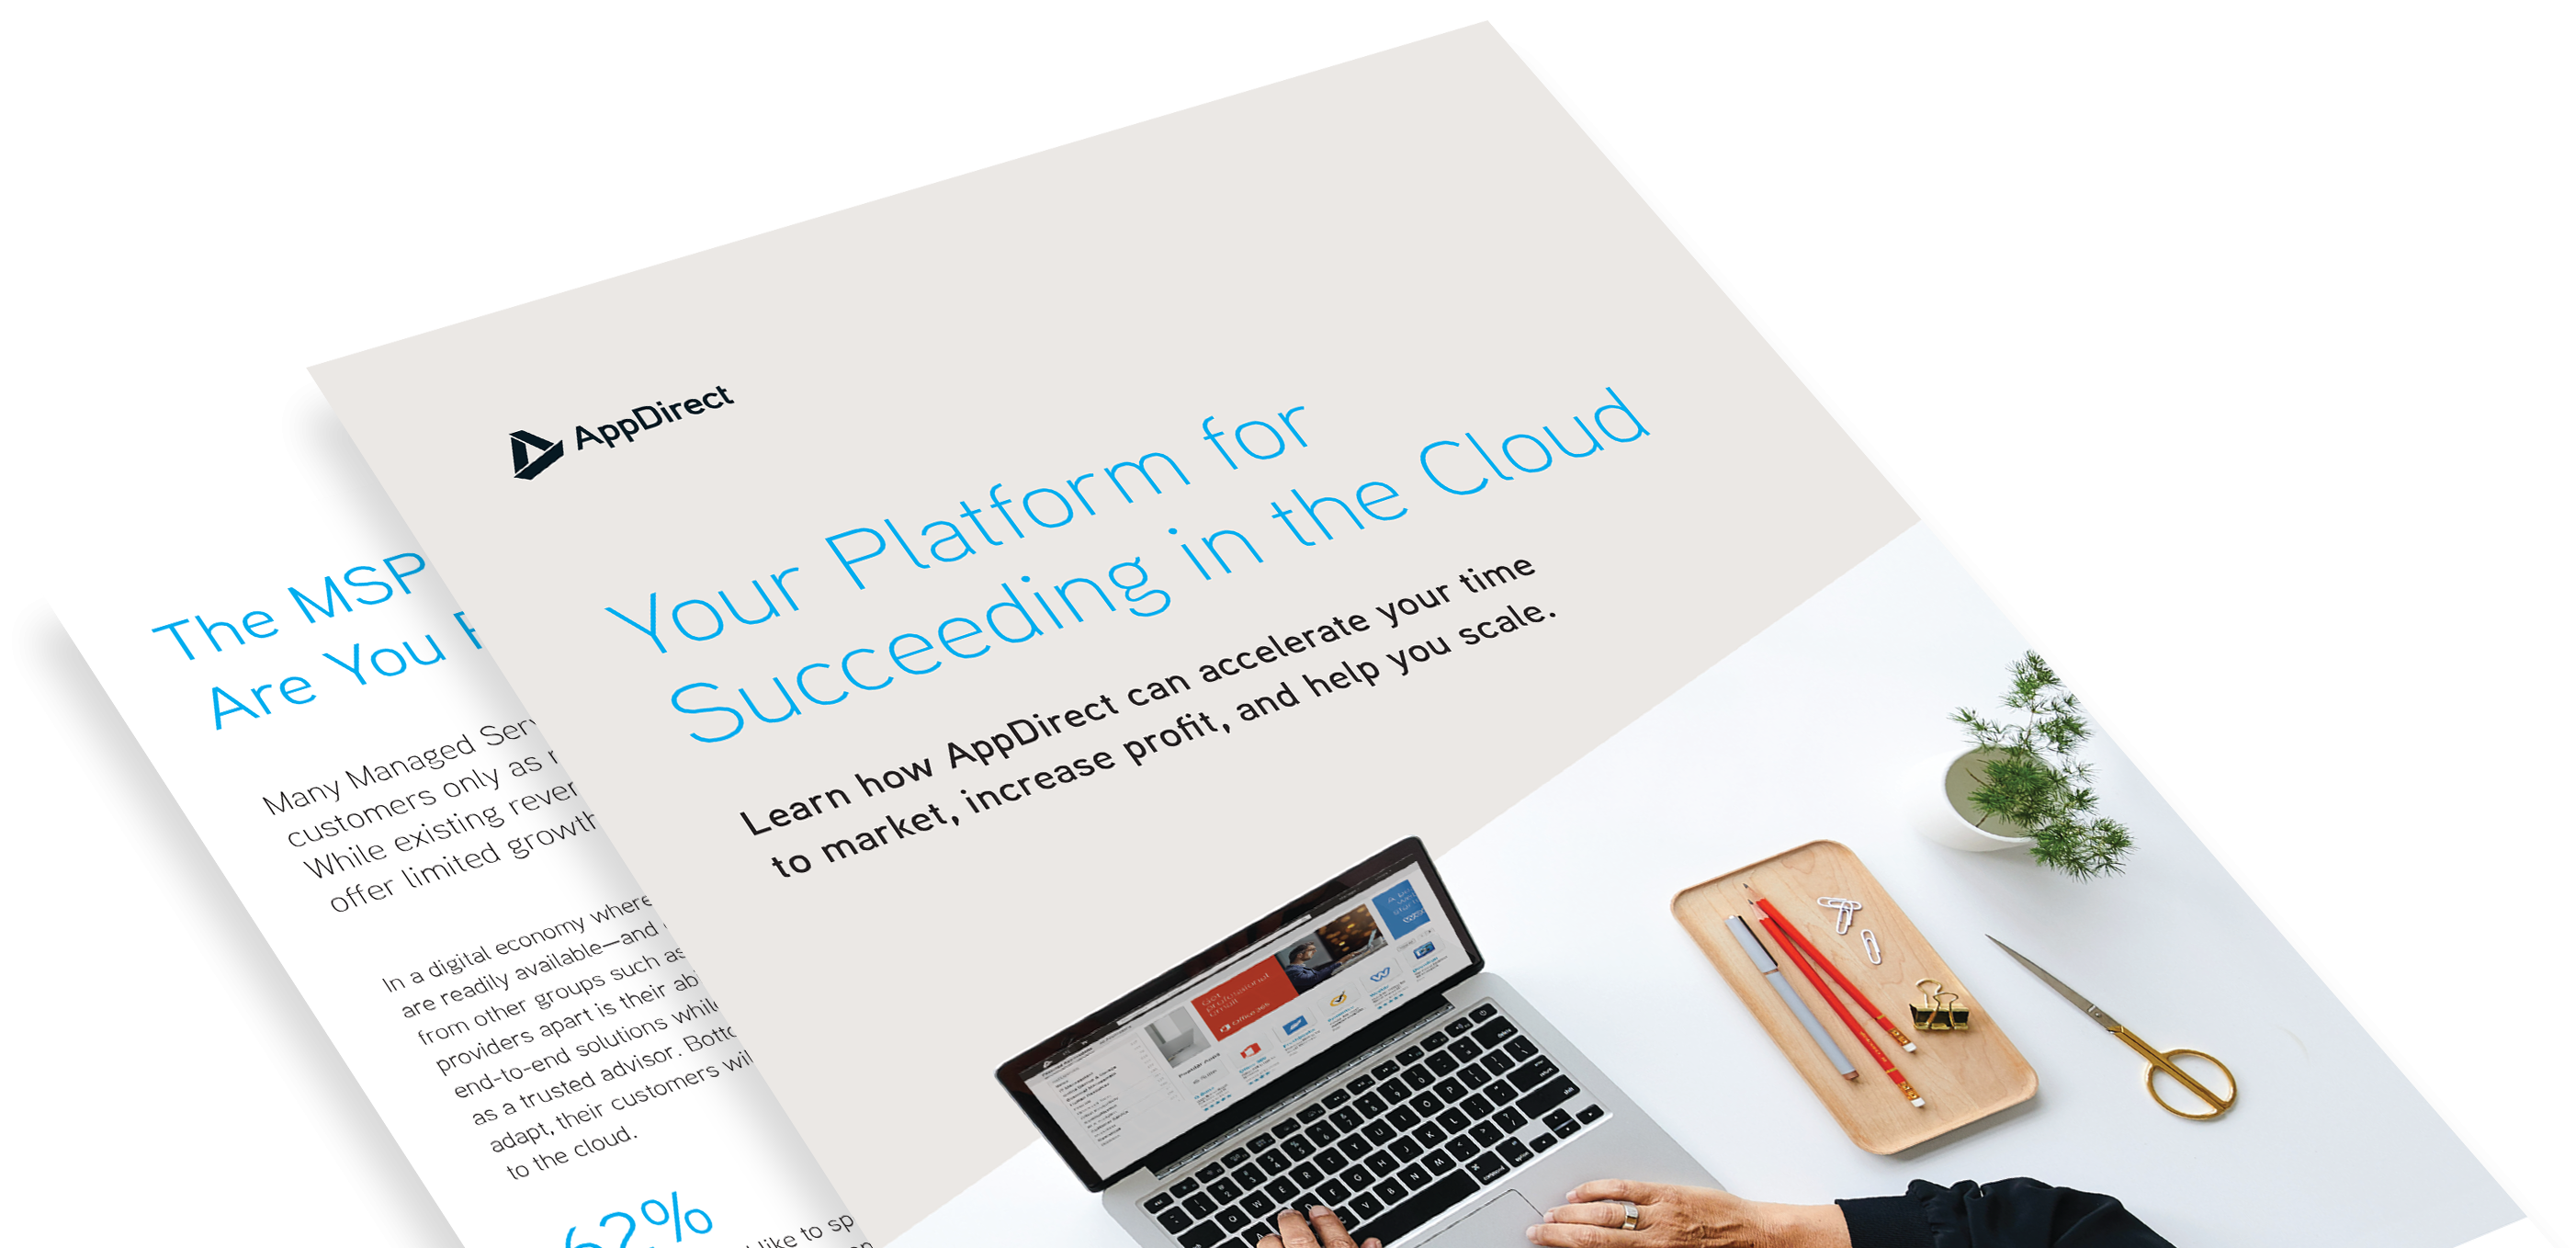 Your Platform for Succeeding in the Cloud